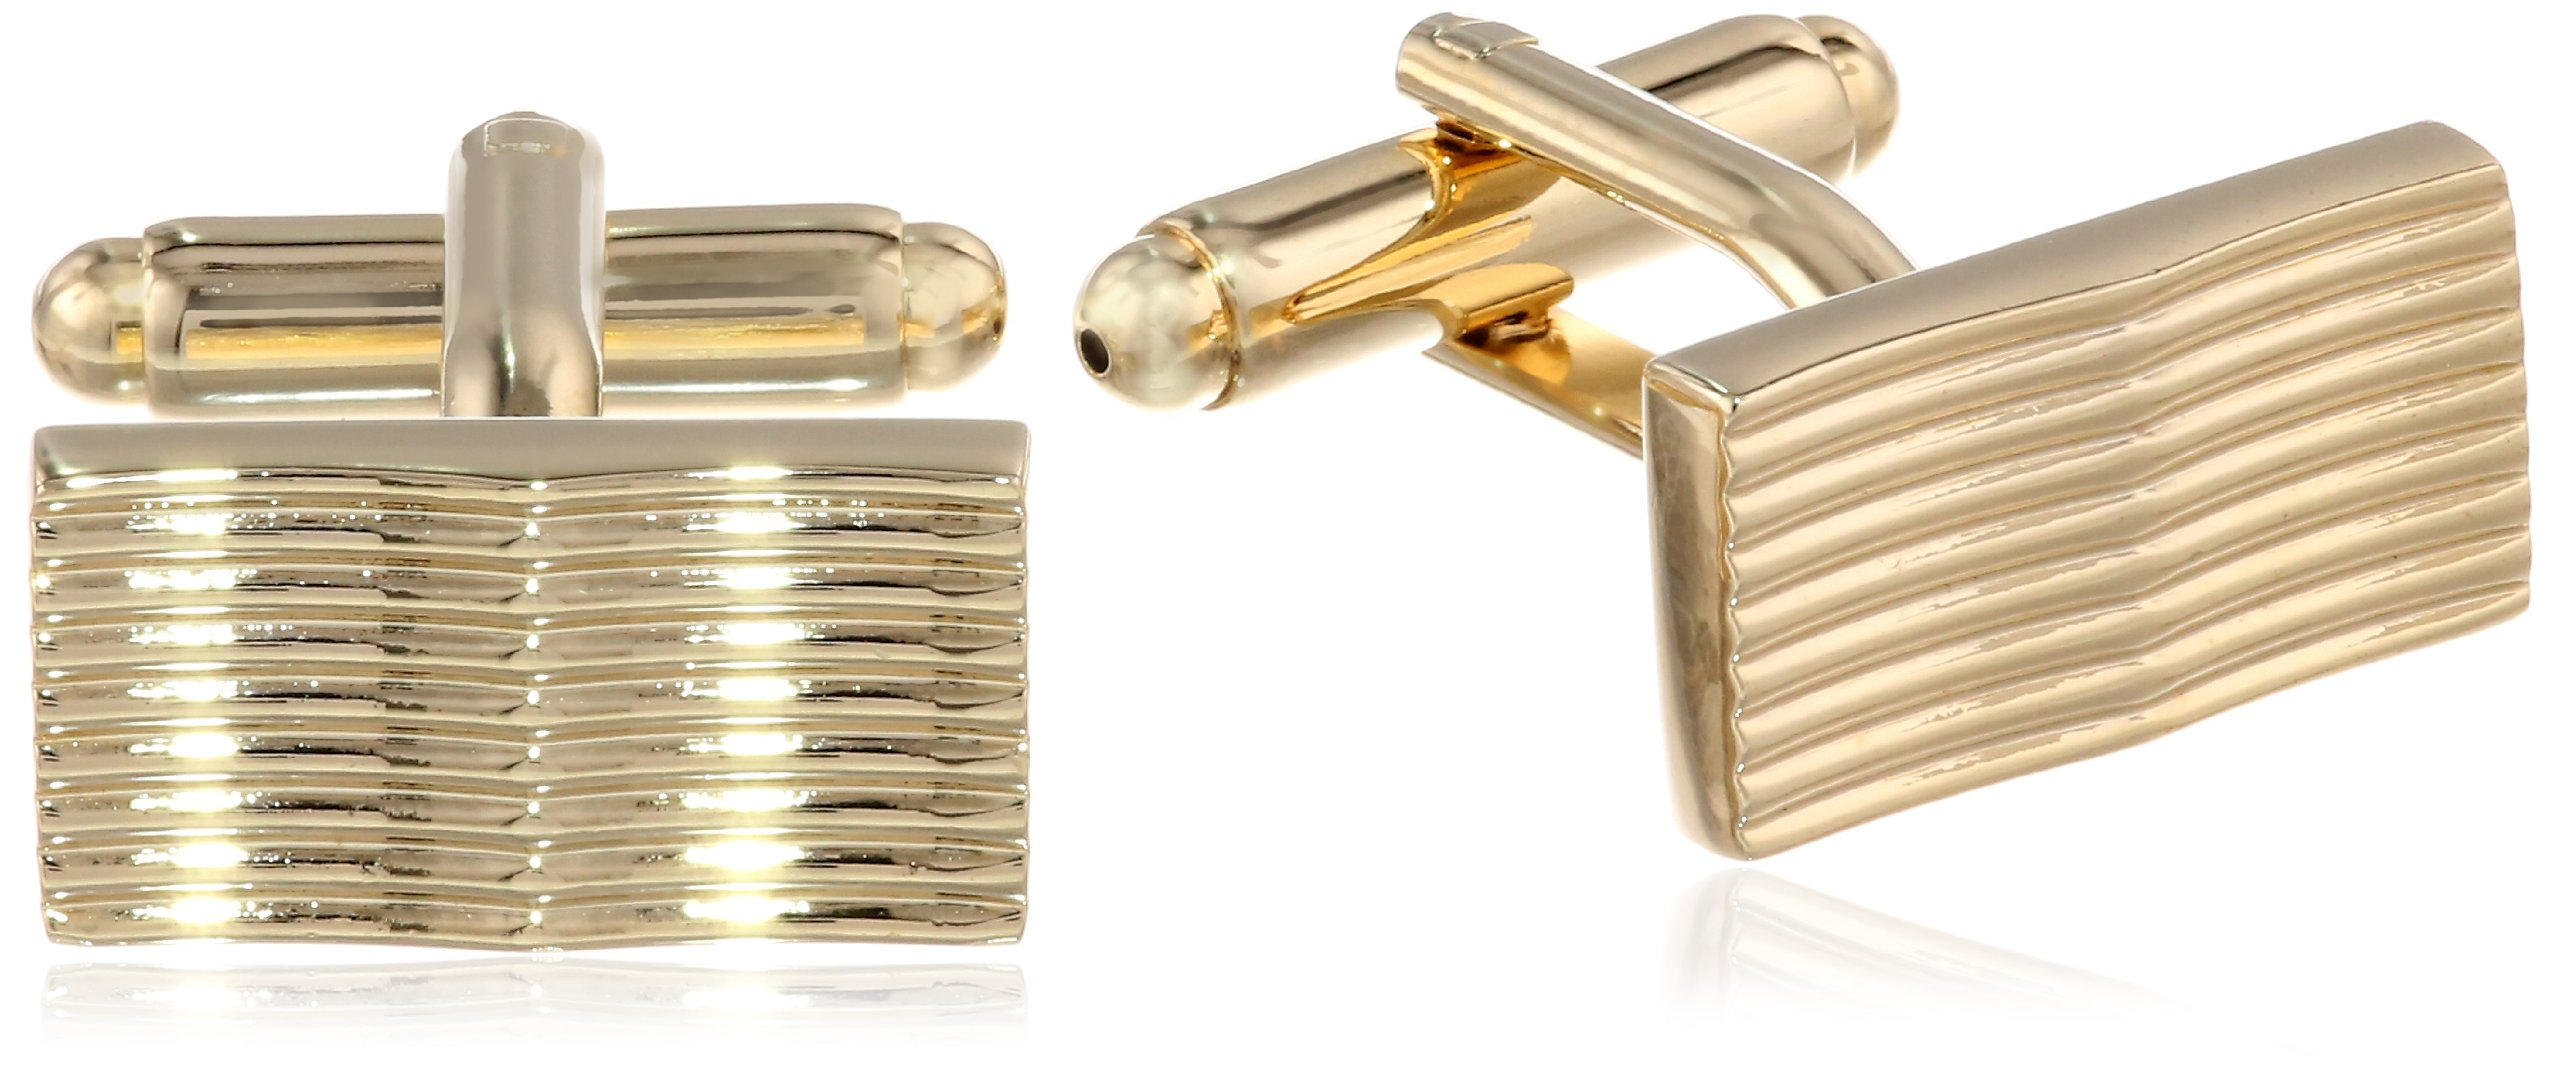 Stacy Adams Men's Cuff Link and Tie Bar With Ridges Set, Gold, One Size